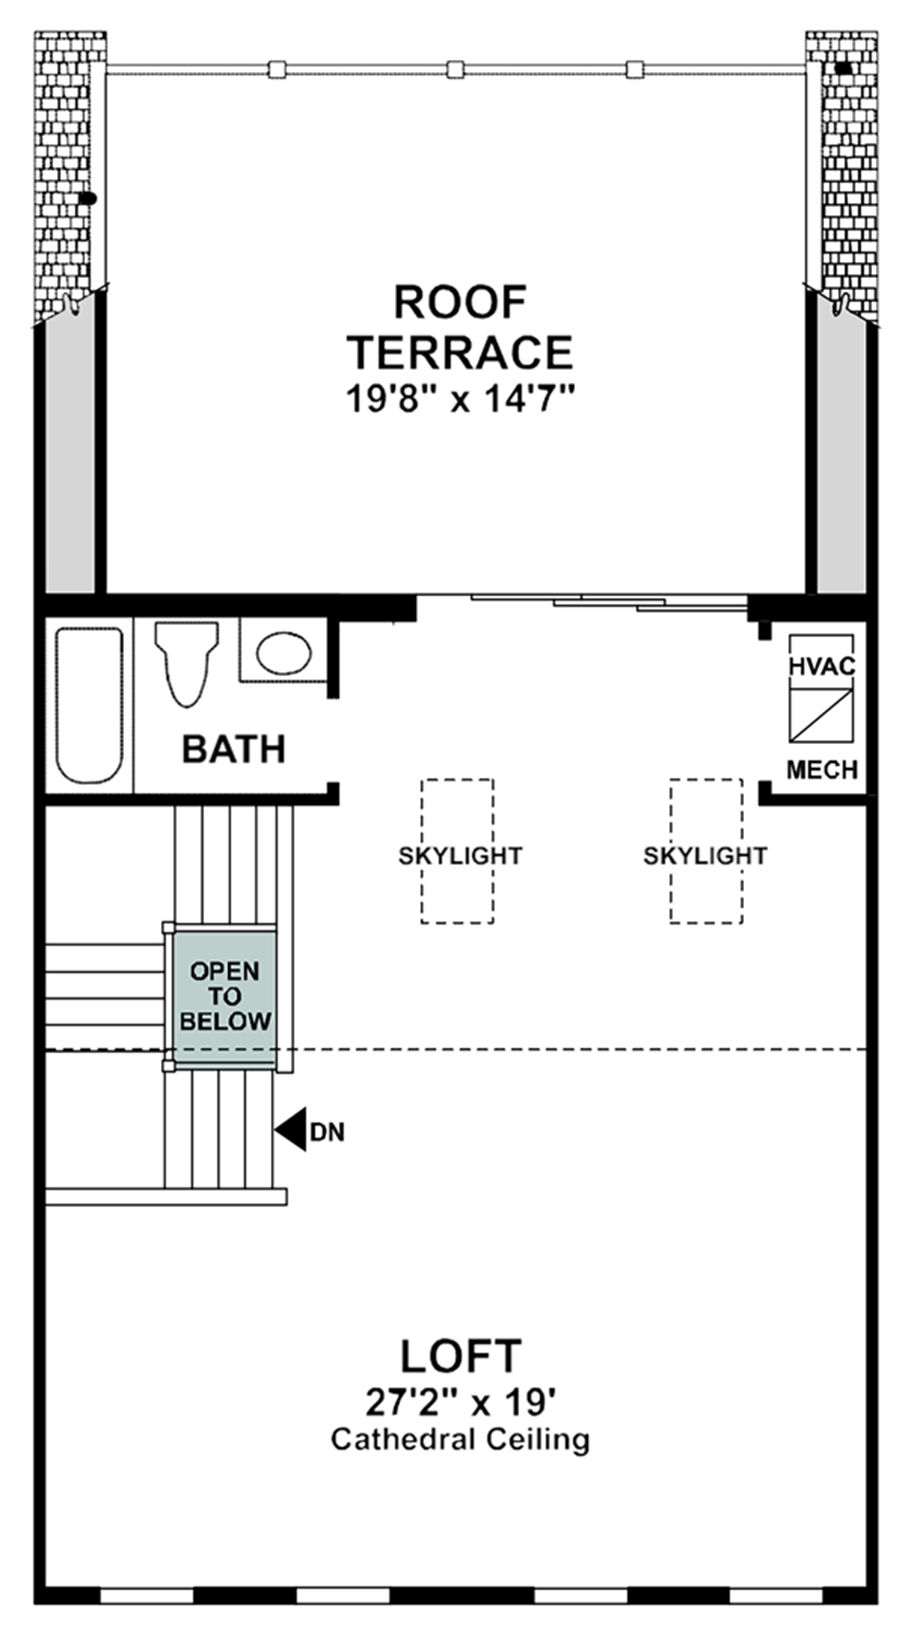 Optional Loft & Rooftop Terrace with Full Bath Floor Plan